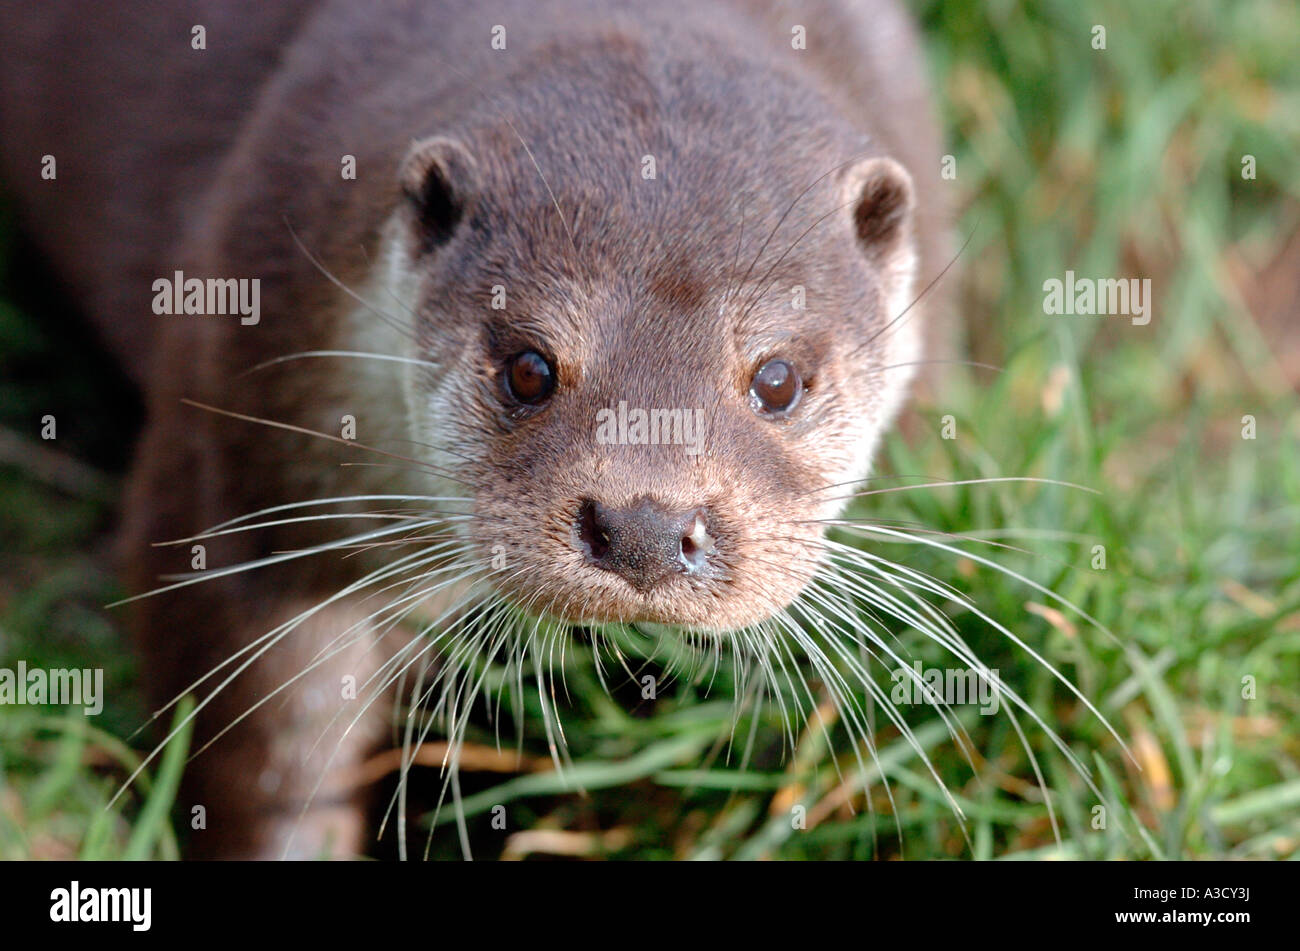 European Otter pictured at New Forest Wildlife Centre in Hampshire, UK Stock Photo